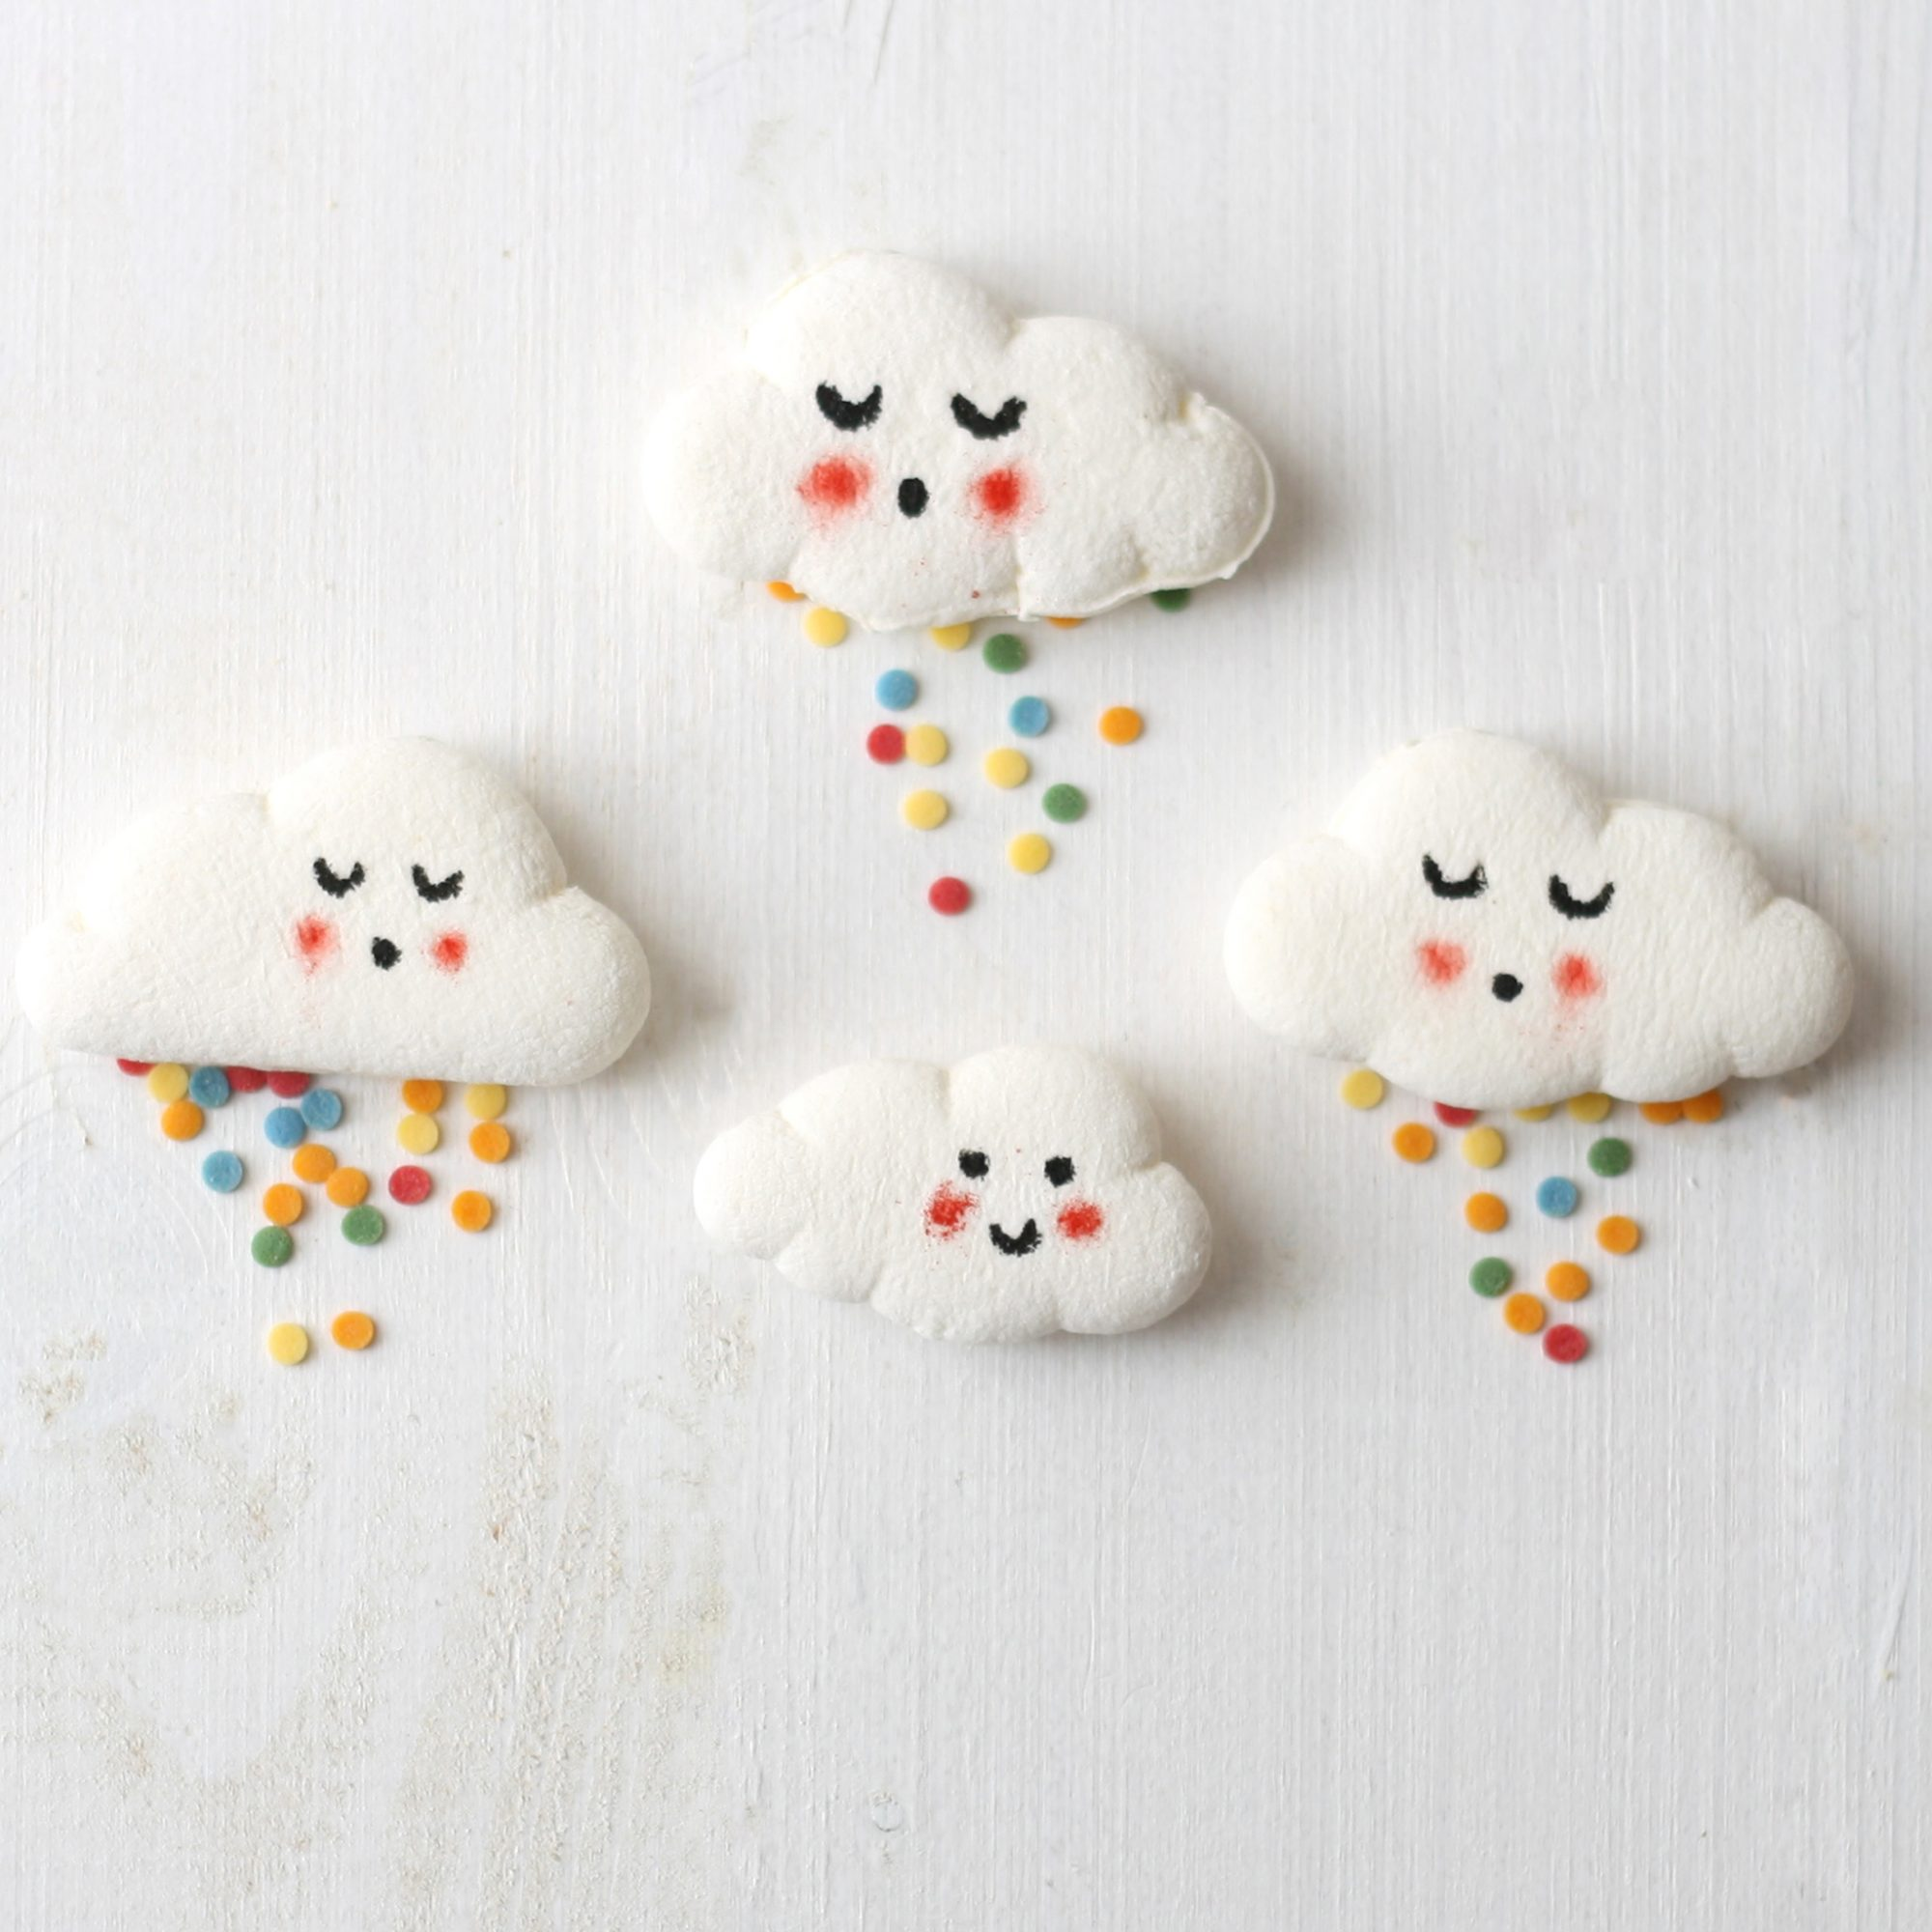 Step Up Your Hot Chocolate Game With Cloud-Shaped Marshmallows